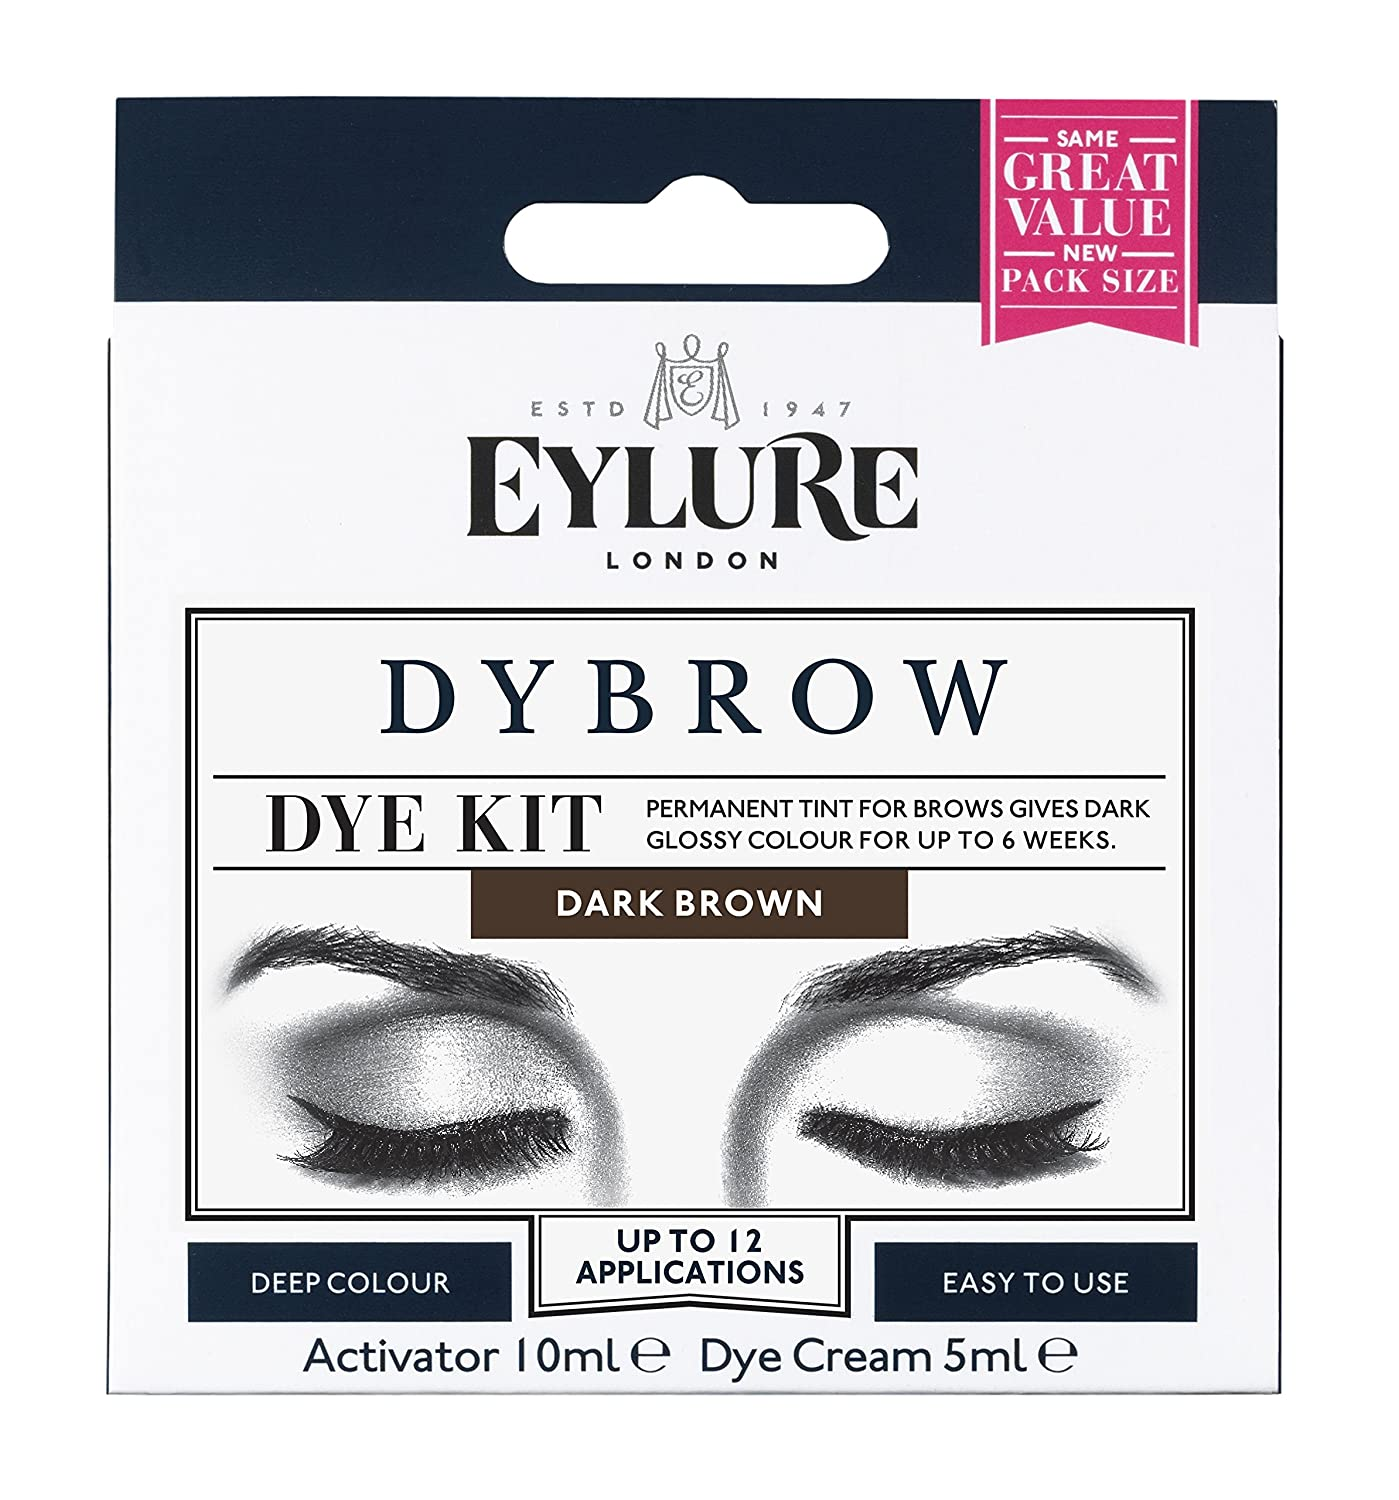 Eylure Dybrow Eyebrow Dye Kit Dark Brown Amazon Beauty